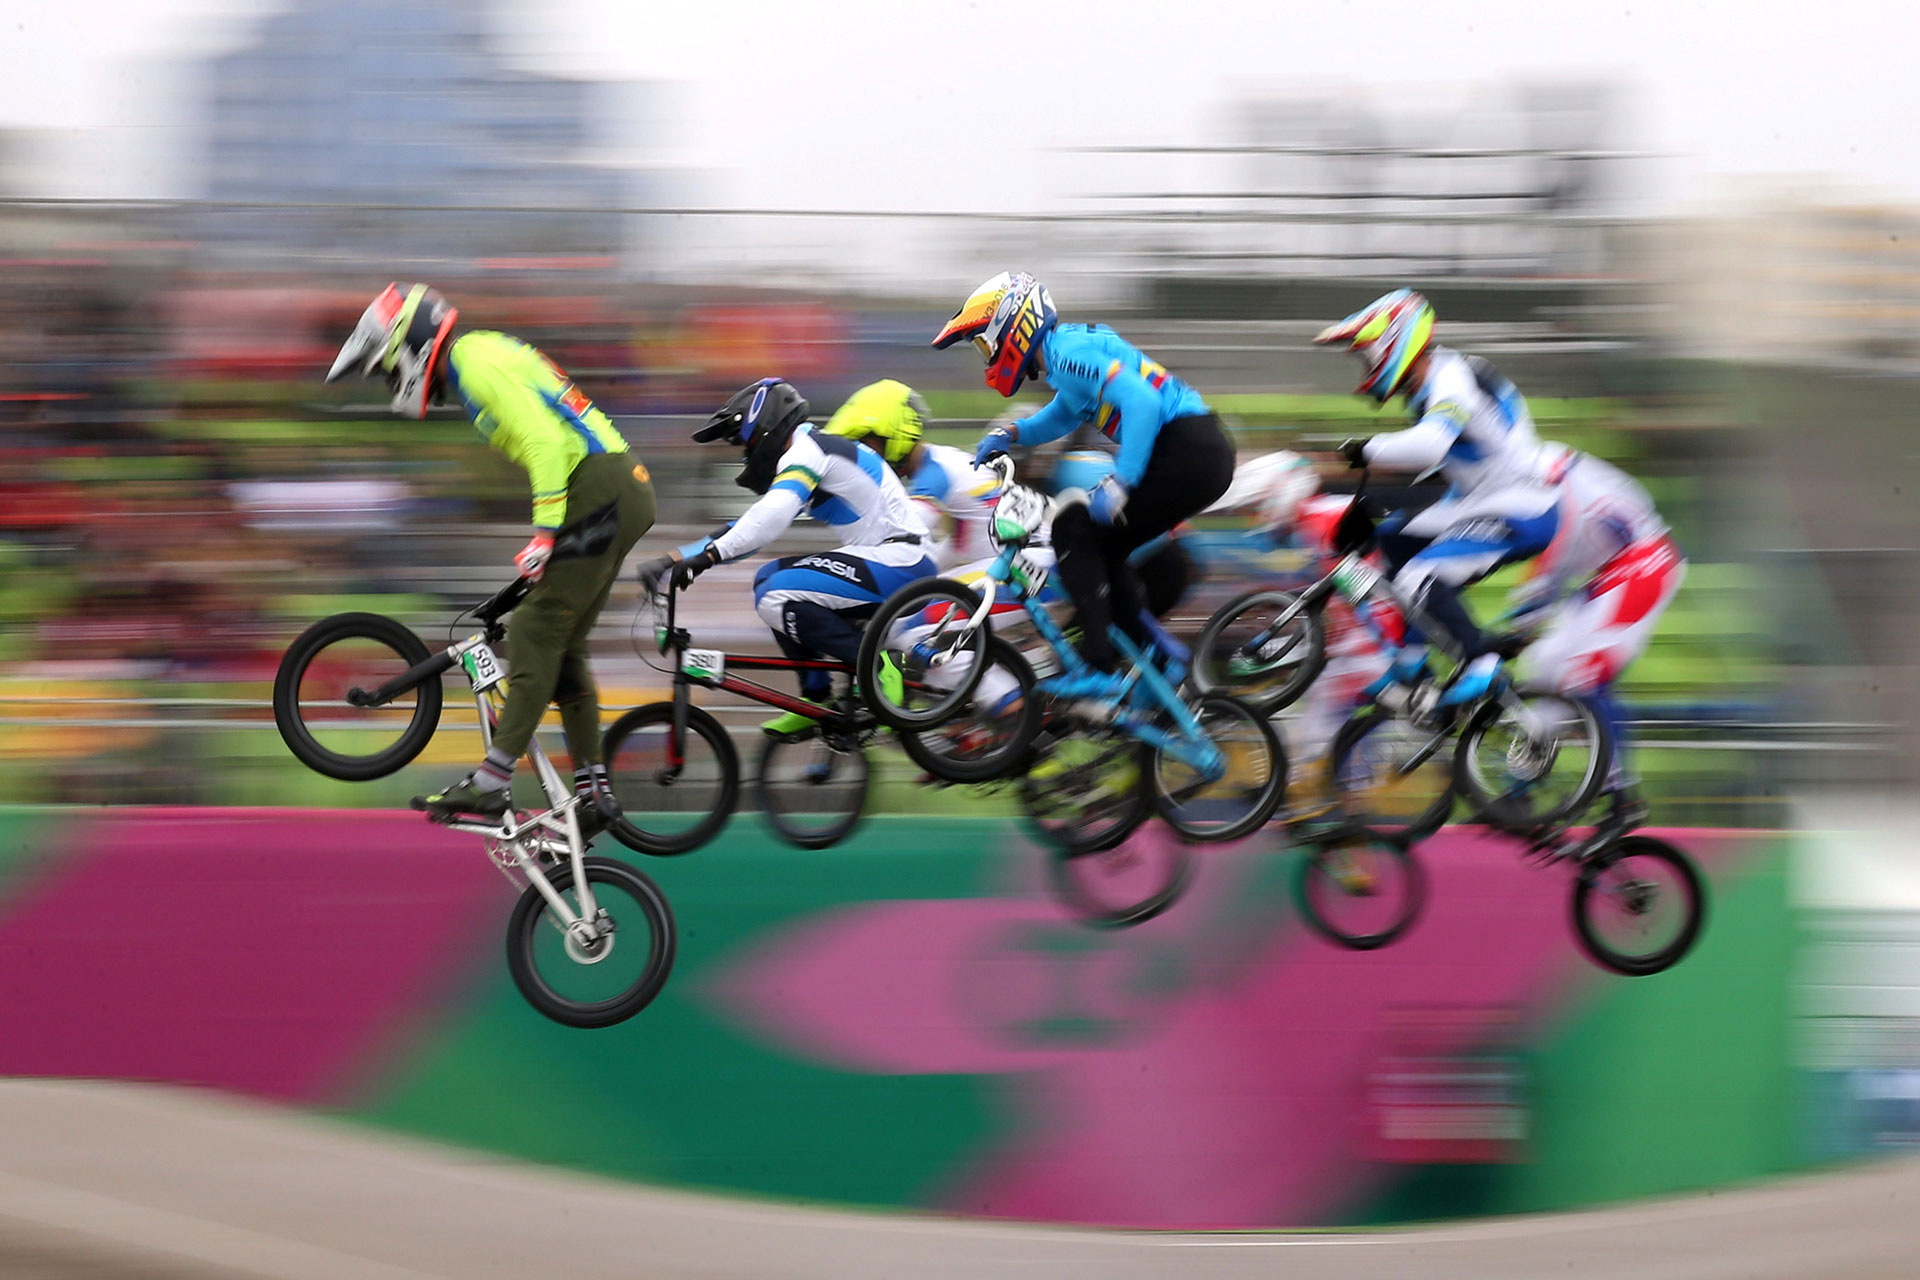 XVIII Pan American Games - Lima 2019 - Cycling BMX - Men Semifinal  - Costa Verde Beach Circuit, Lima, Peru - August 9, 2019. Athletes compete. REUTERS/Pilar Olivares     TPX IMAGES OF THE DAY